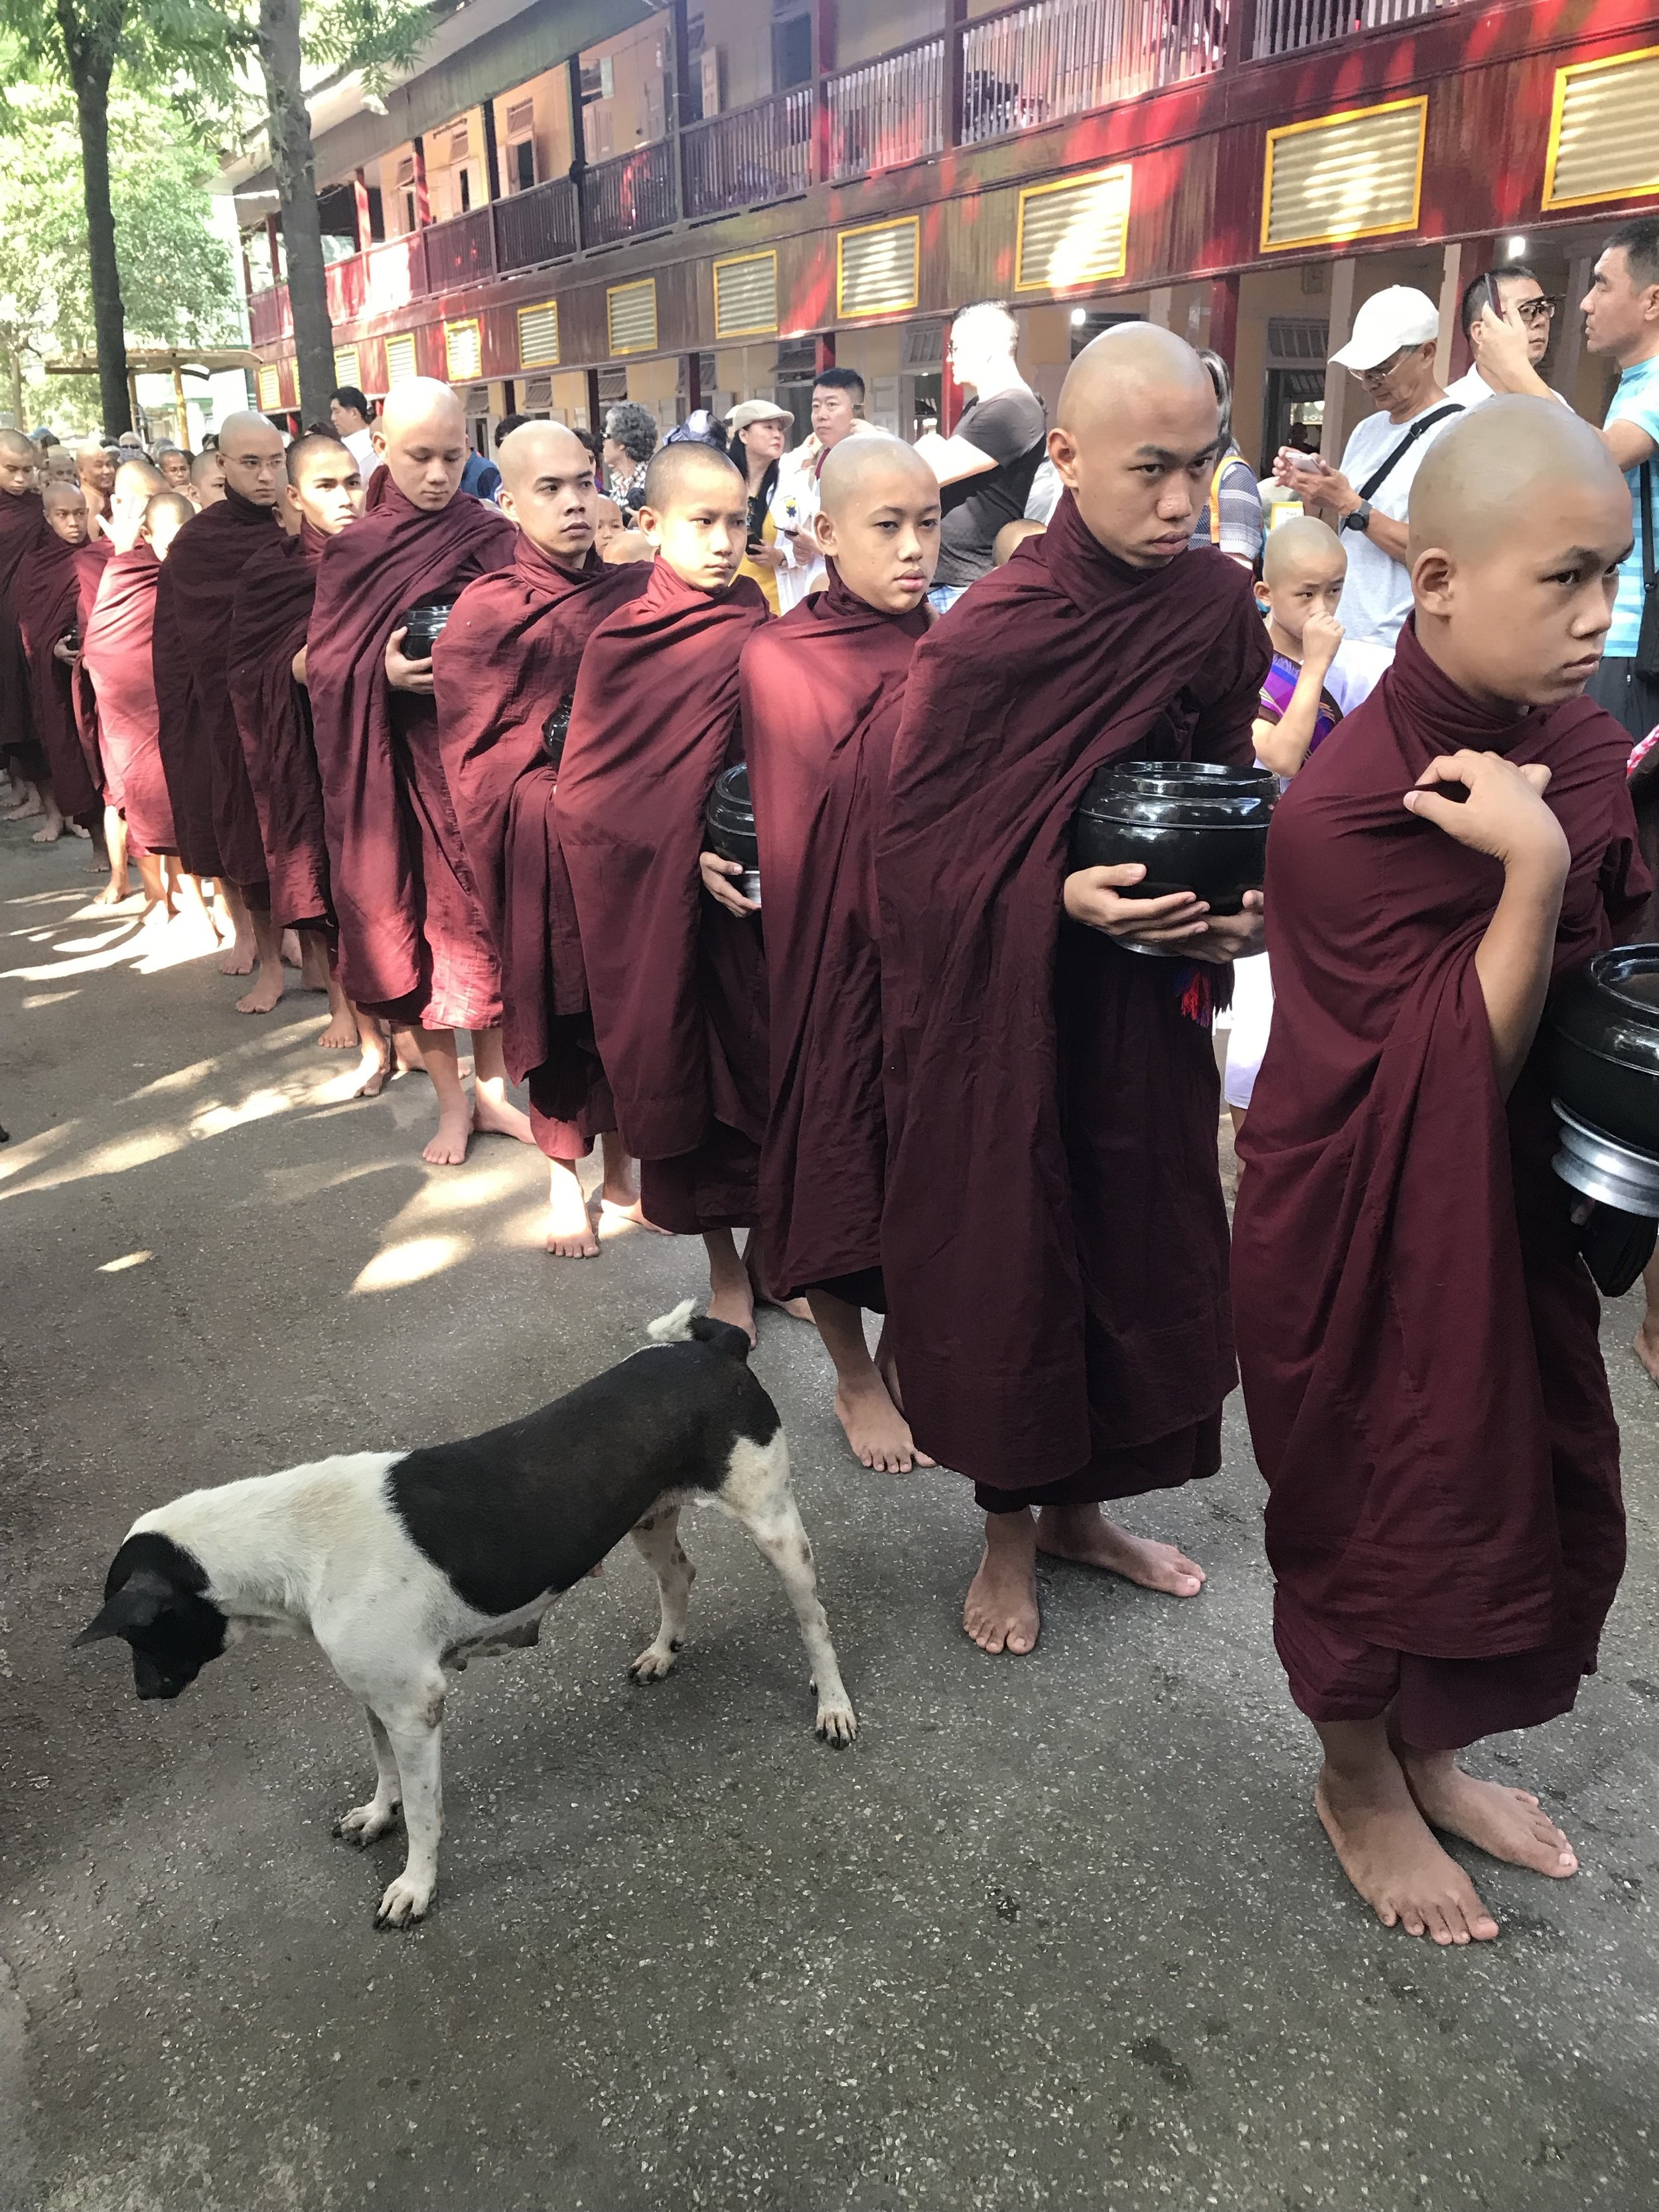 Nearly 90% of the population in Myanmar practice Buddhism - Theravada is the most common tradition. Above -    Daily Alms Round     In  Theravada  Buddhism, many monks (Pāli:   bhikkhus  ) go on a daily almsround (or  pindabat ) to collect food.